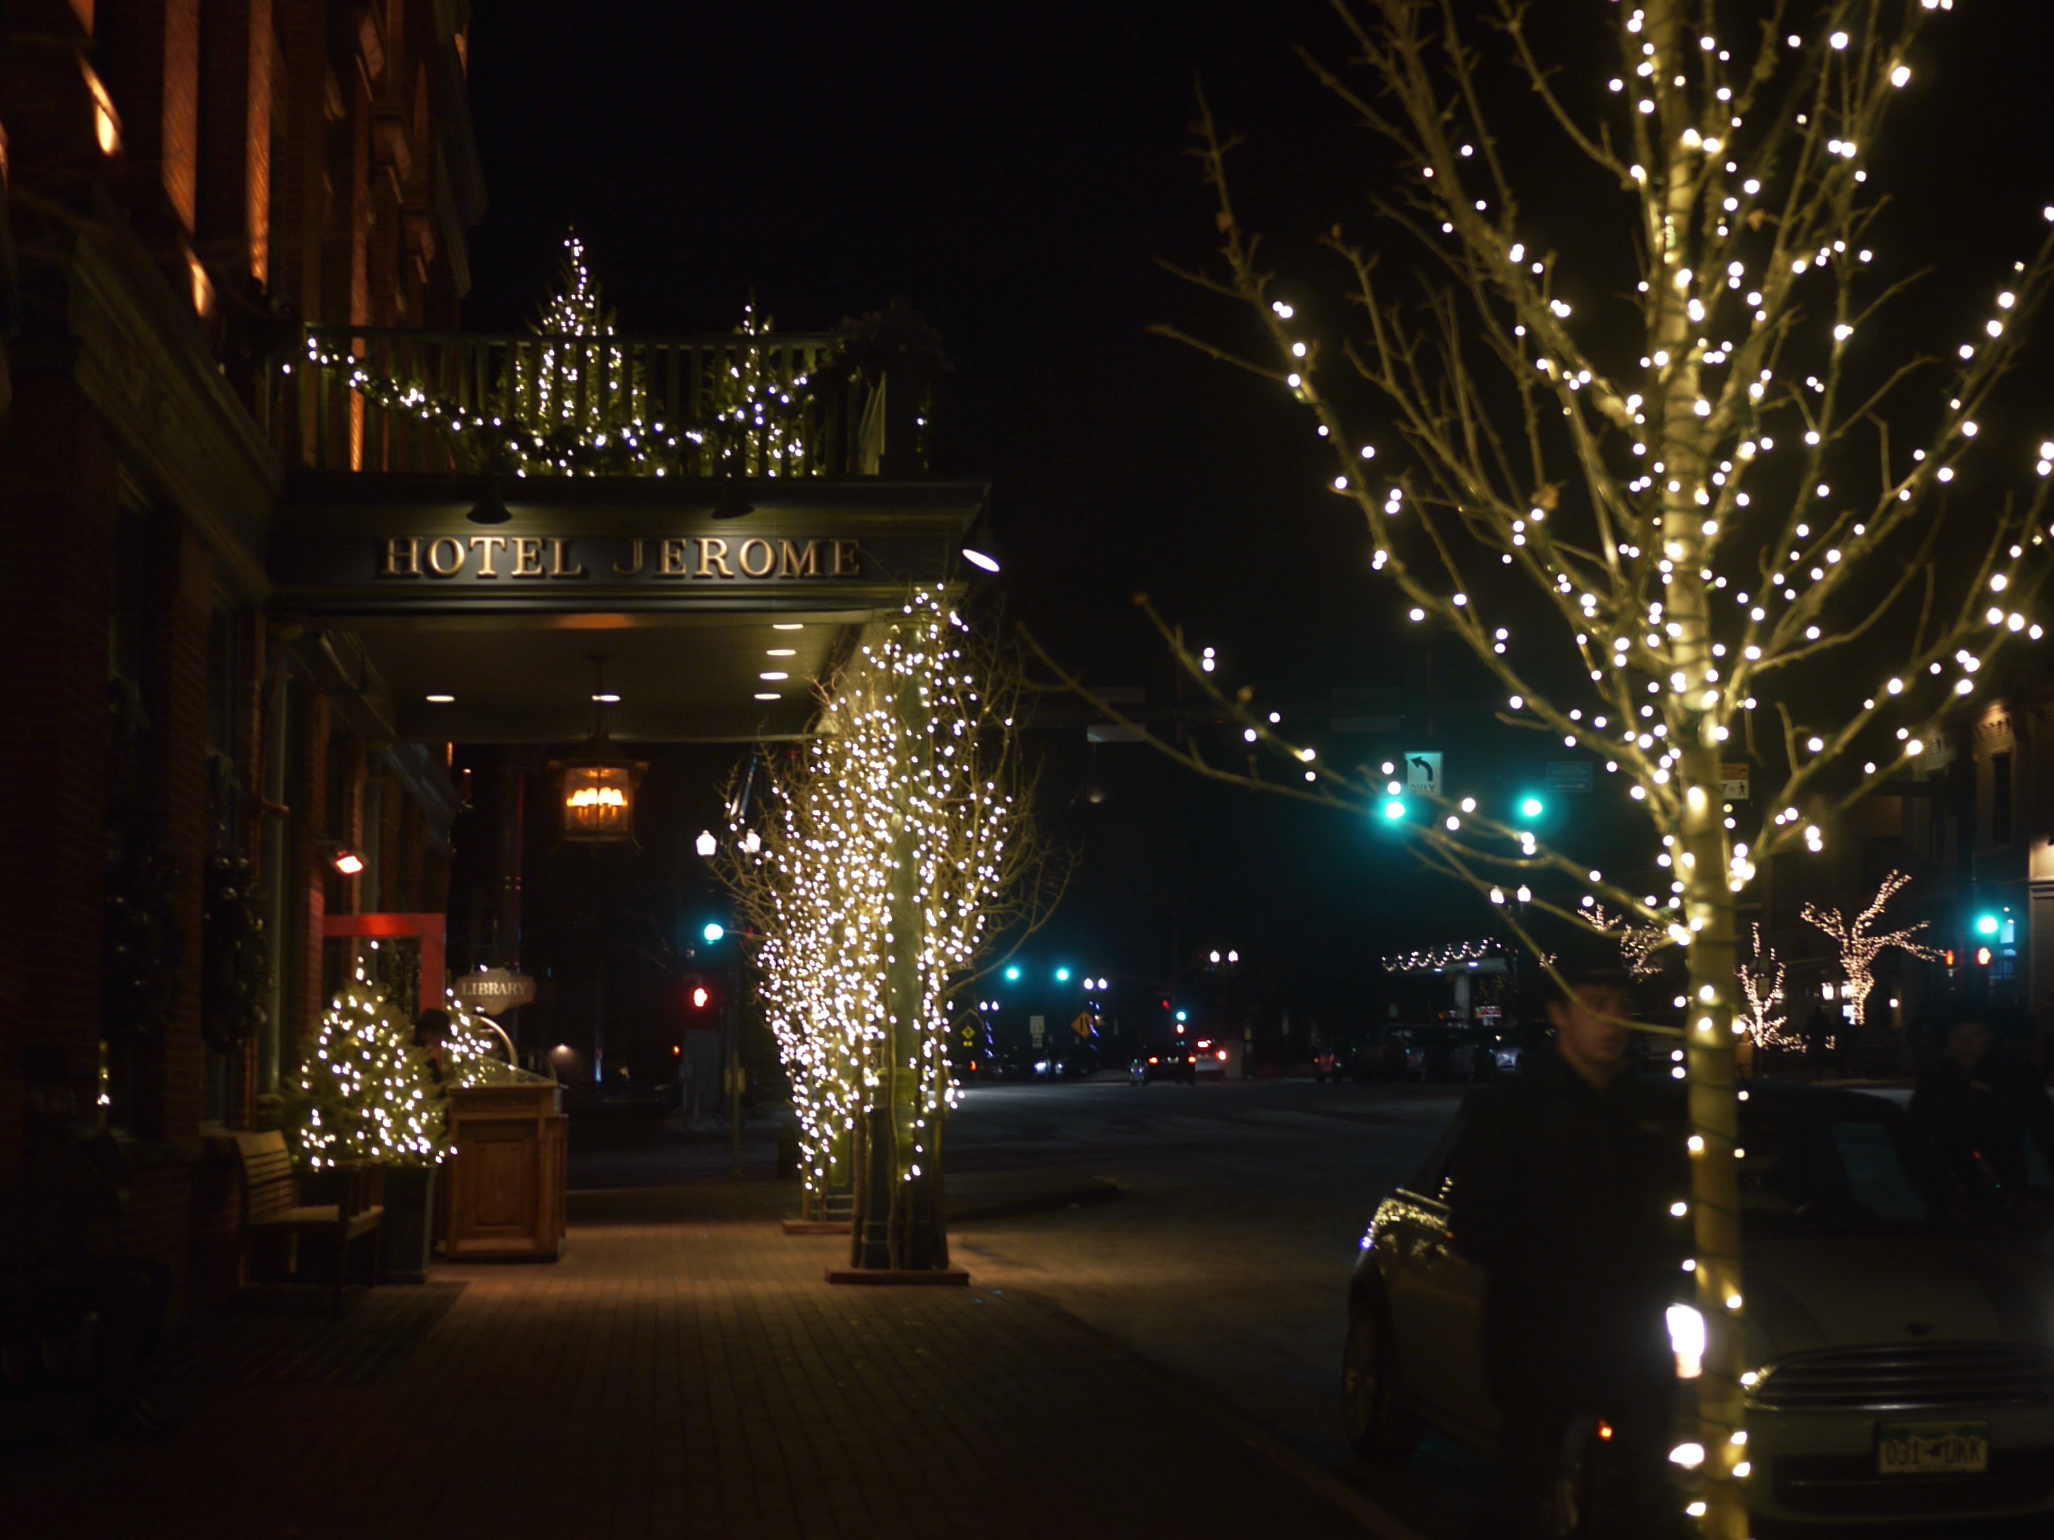 Hotel Jerome Aspen Winter Lights